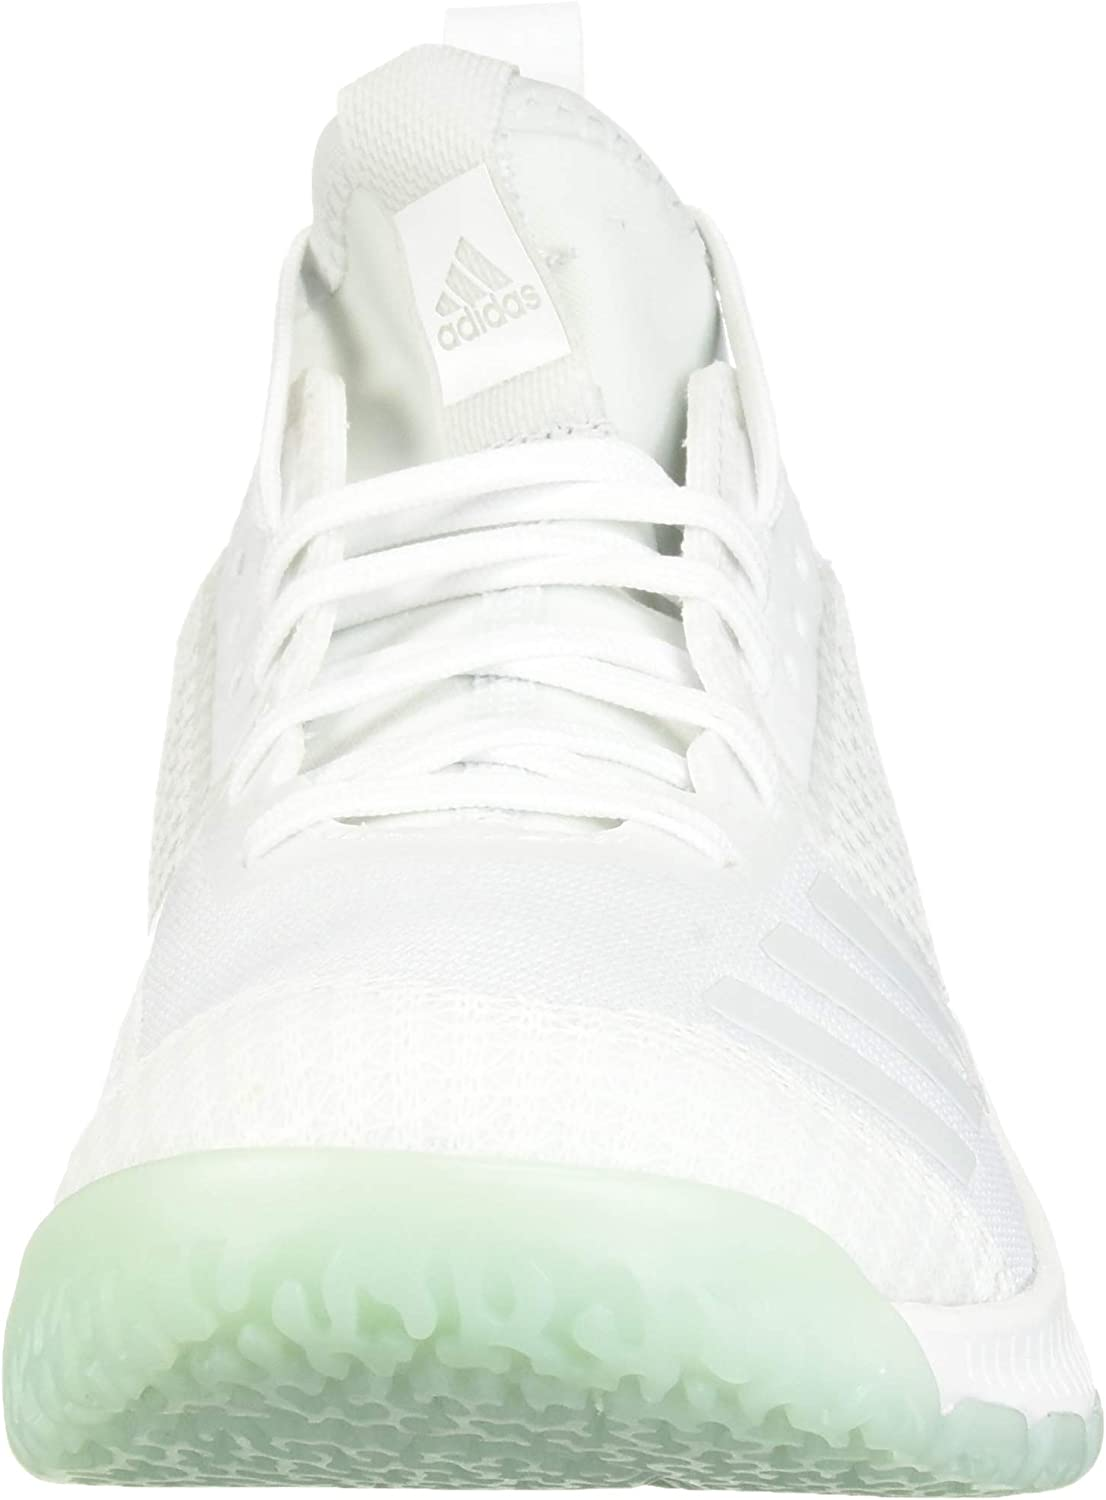 Adidas - Chaussures de volleyball Crazyflight X2 - Pour femme White Blue Tint Clear Mint